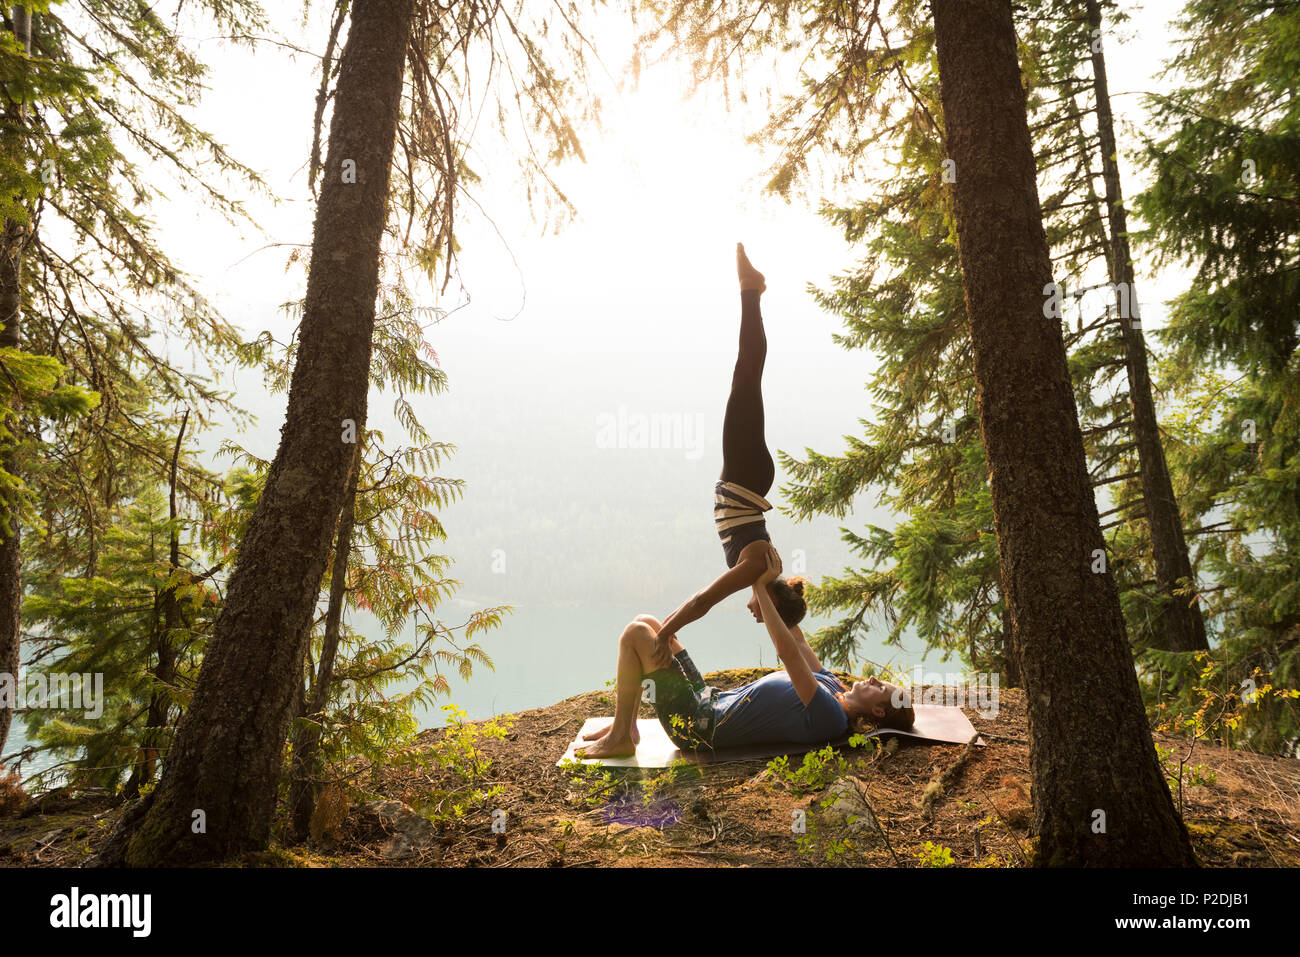 Sporty couple practicing acro yoga in a lush green forest - Stock Image